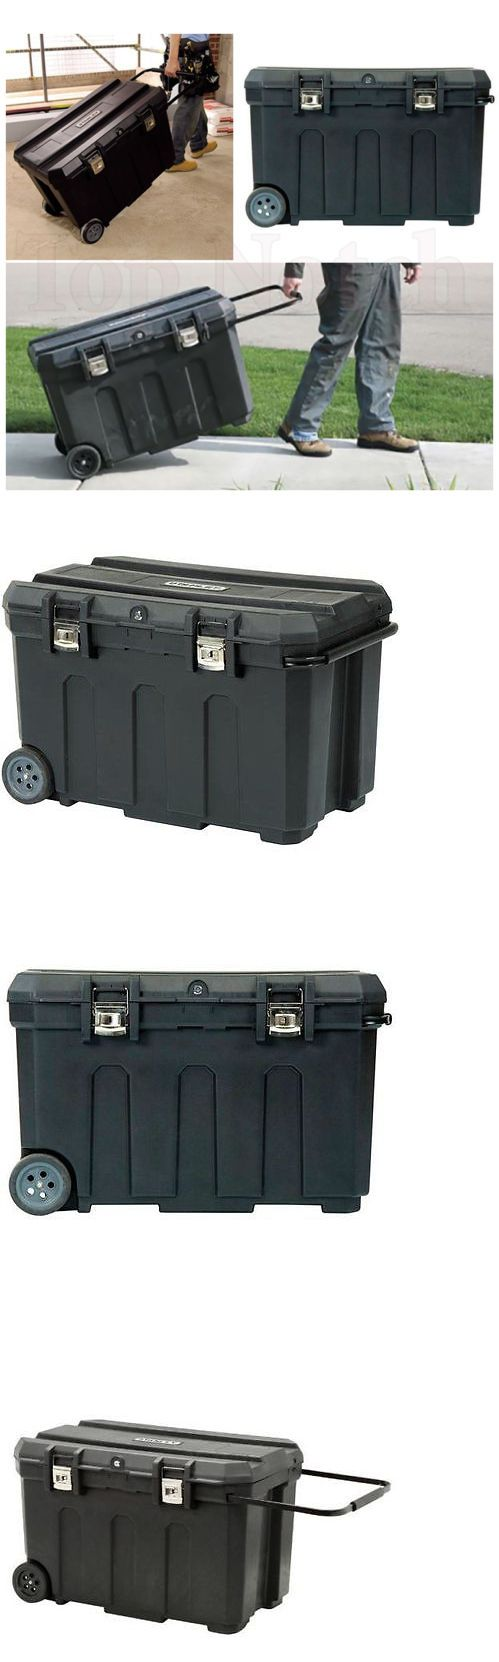 Other Horse Care and Grooming 77696: Box Tack Trunks For Horses Rolling Portable Stable Tool Horse Grooming Supplies -> BUY IT NOW ONLY: $349.95 on eBay!